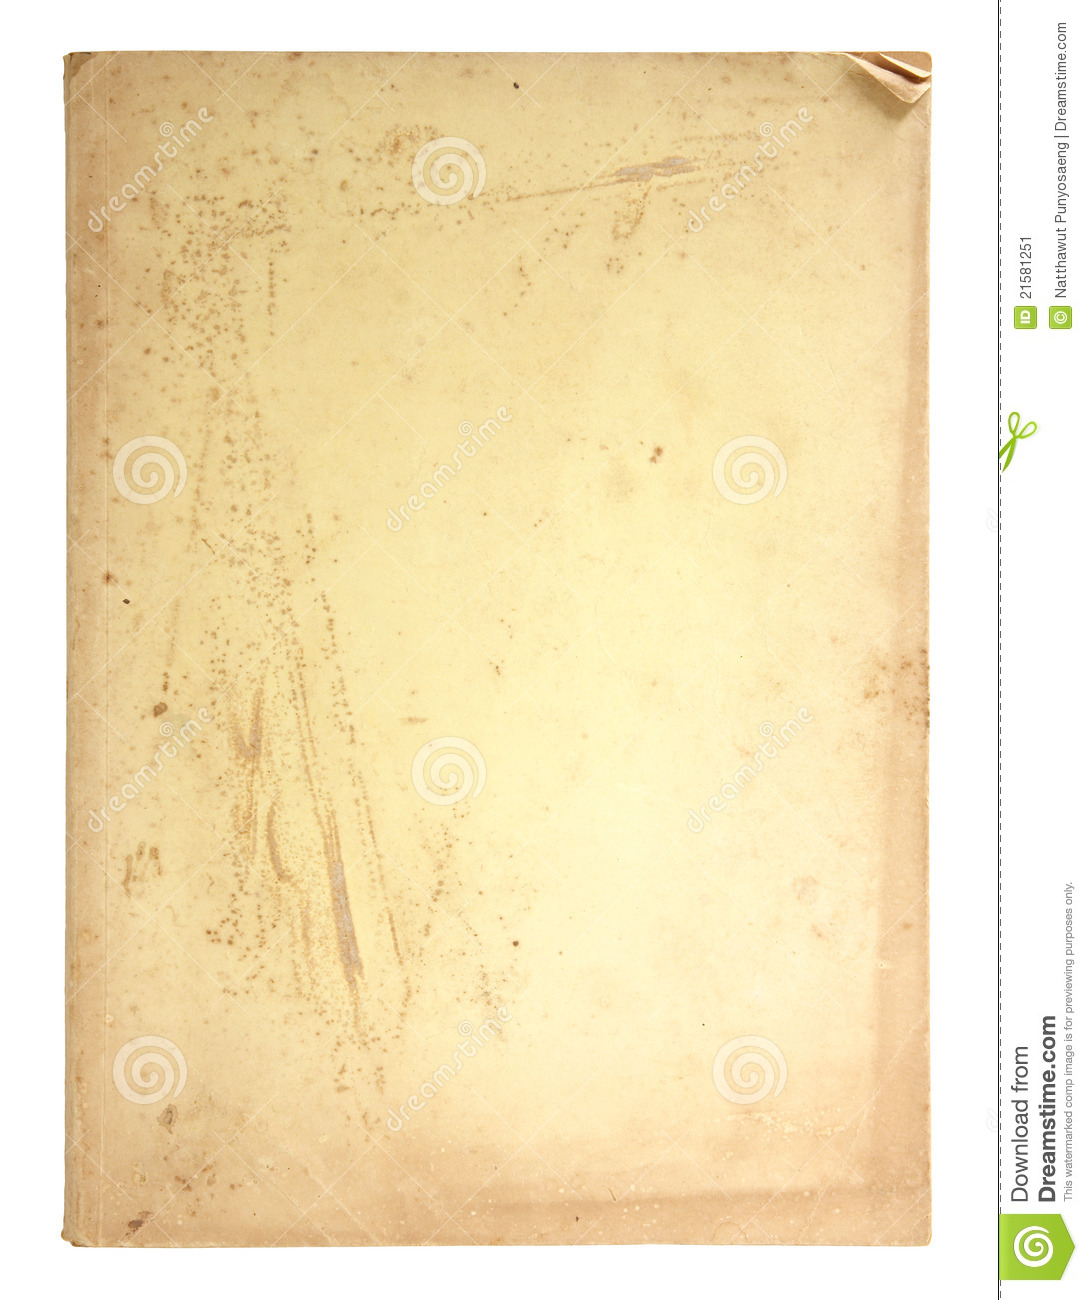 Old Book Pages Isolated Stock Image - Image: 21581251